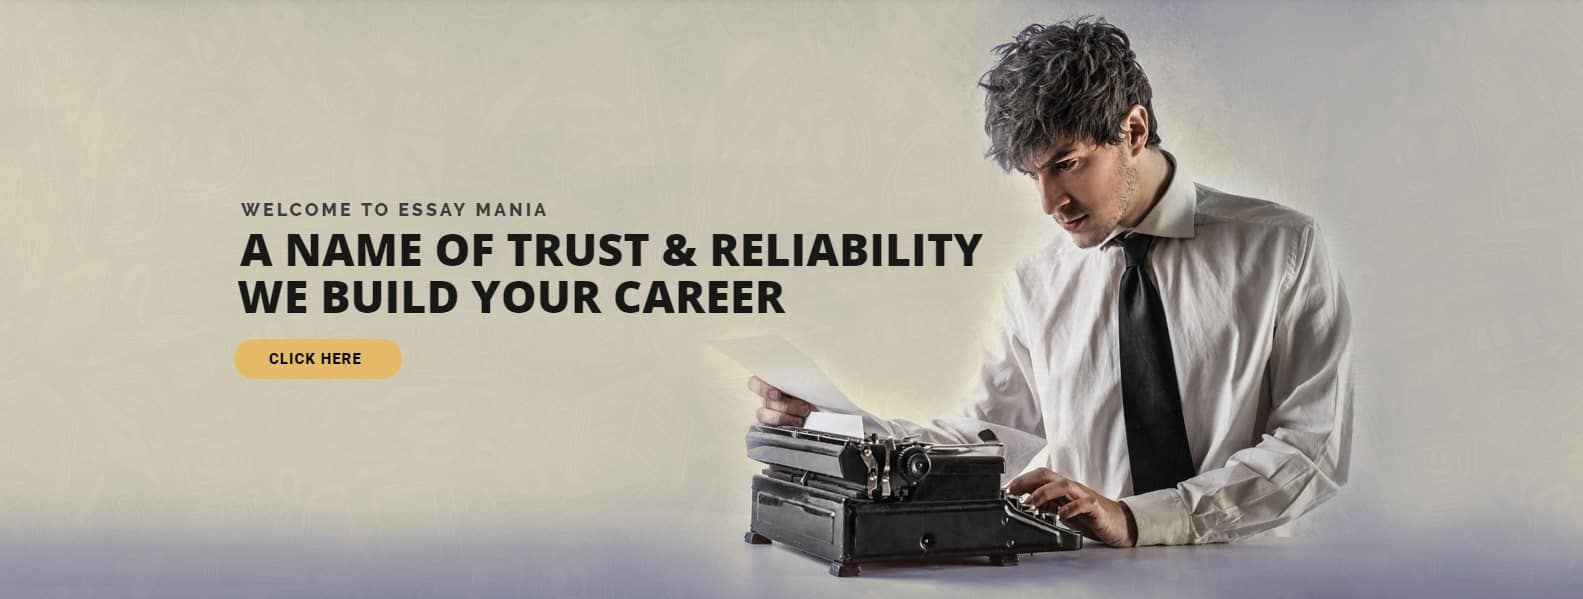 Best Essay Writing Service Services Good